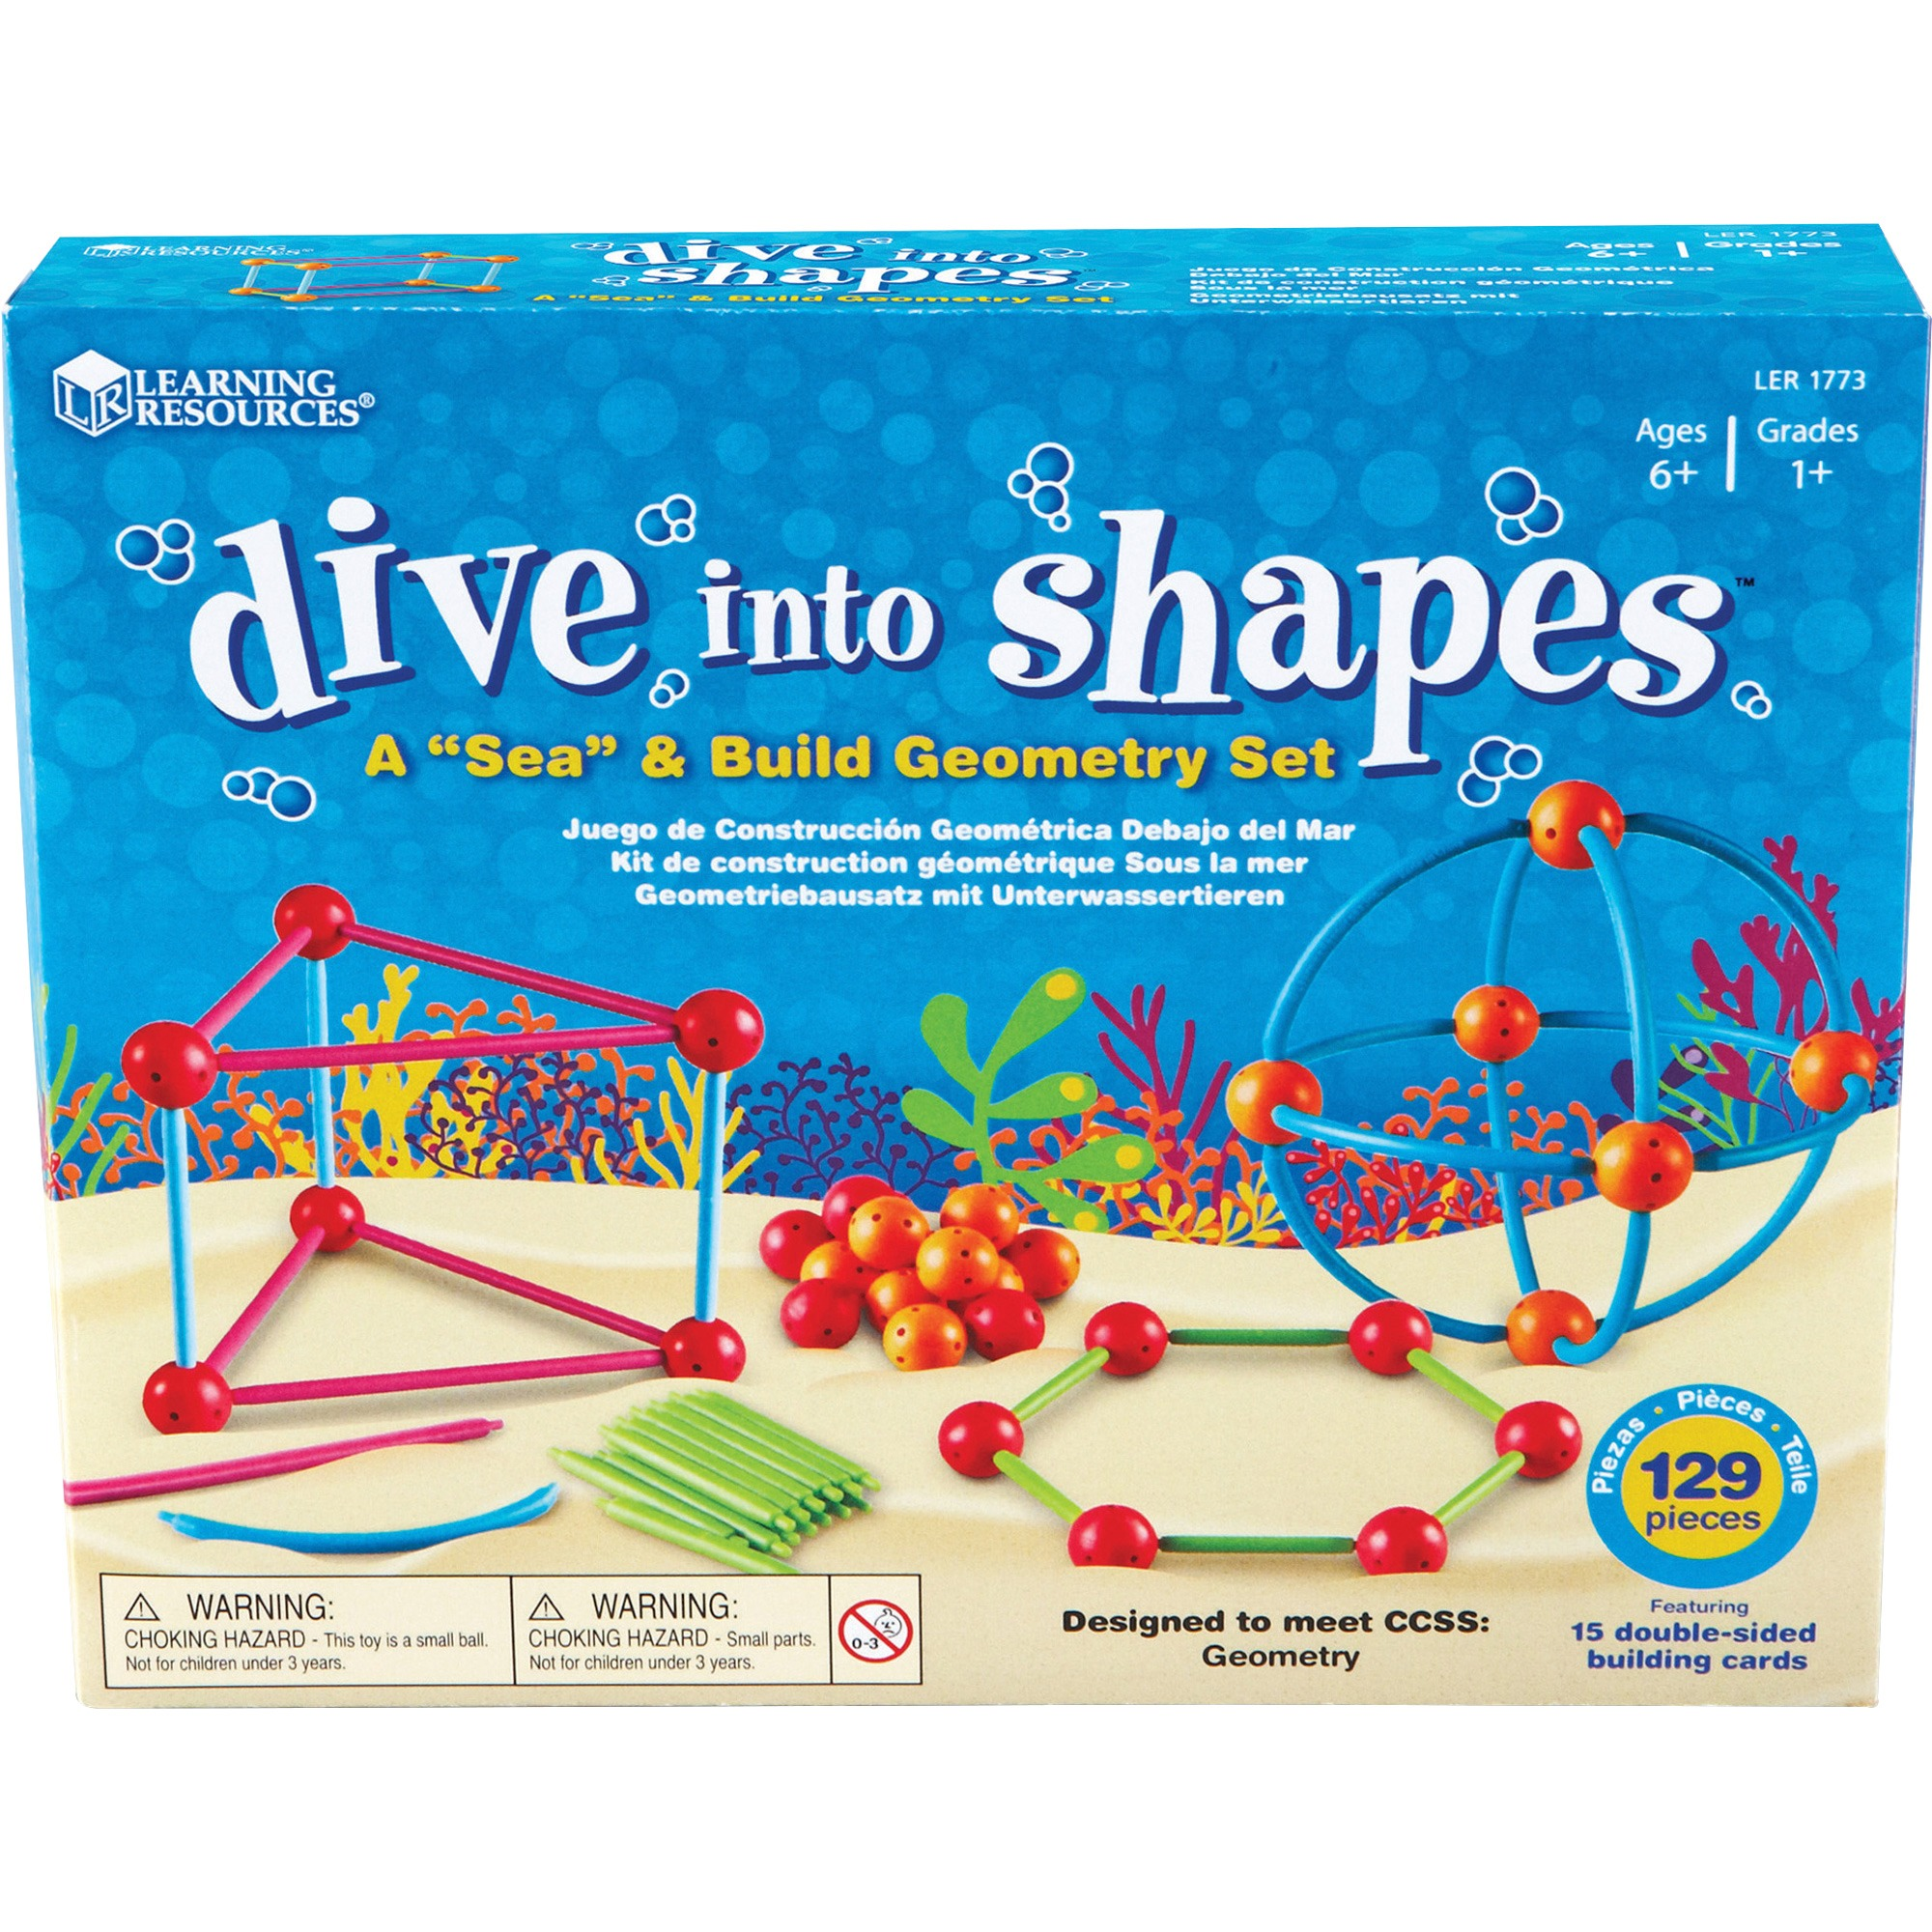 Learning Resources, LRN1773, Dive Shapes Sea/Build Geometry Set, 1 Set, Assorted